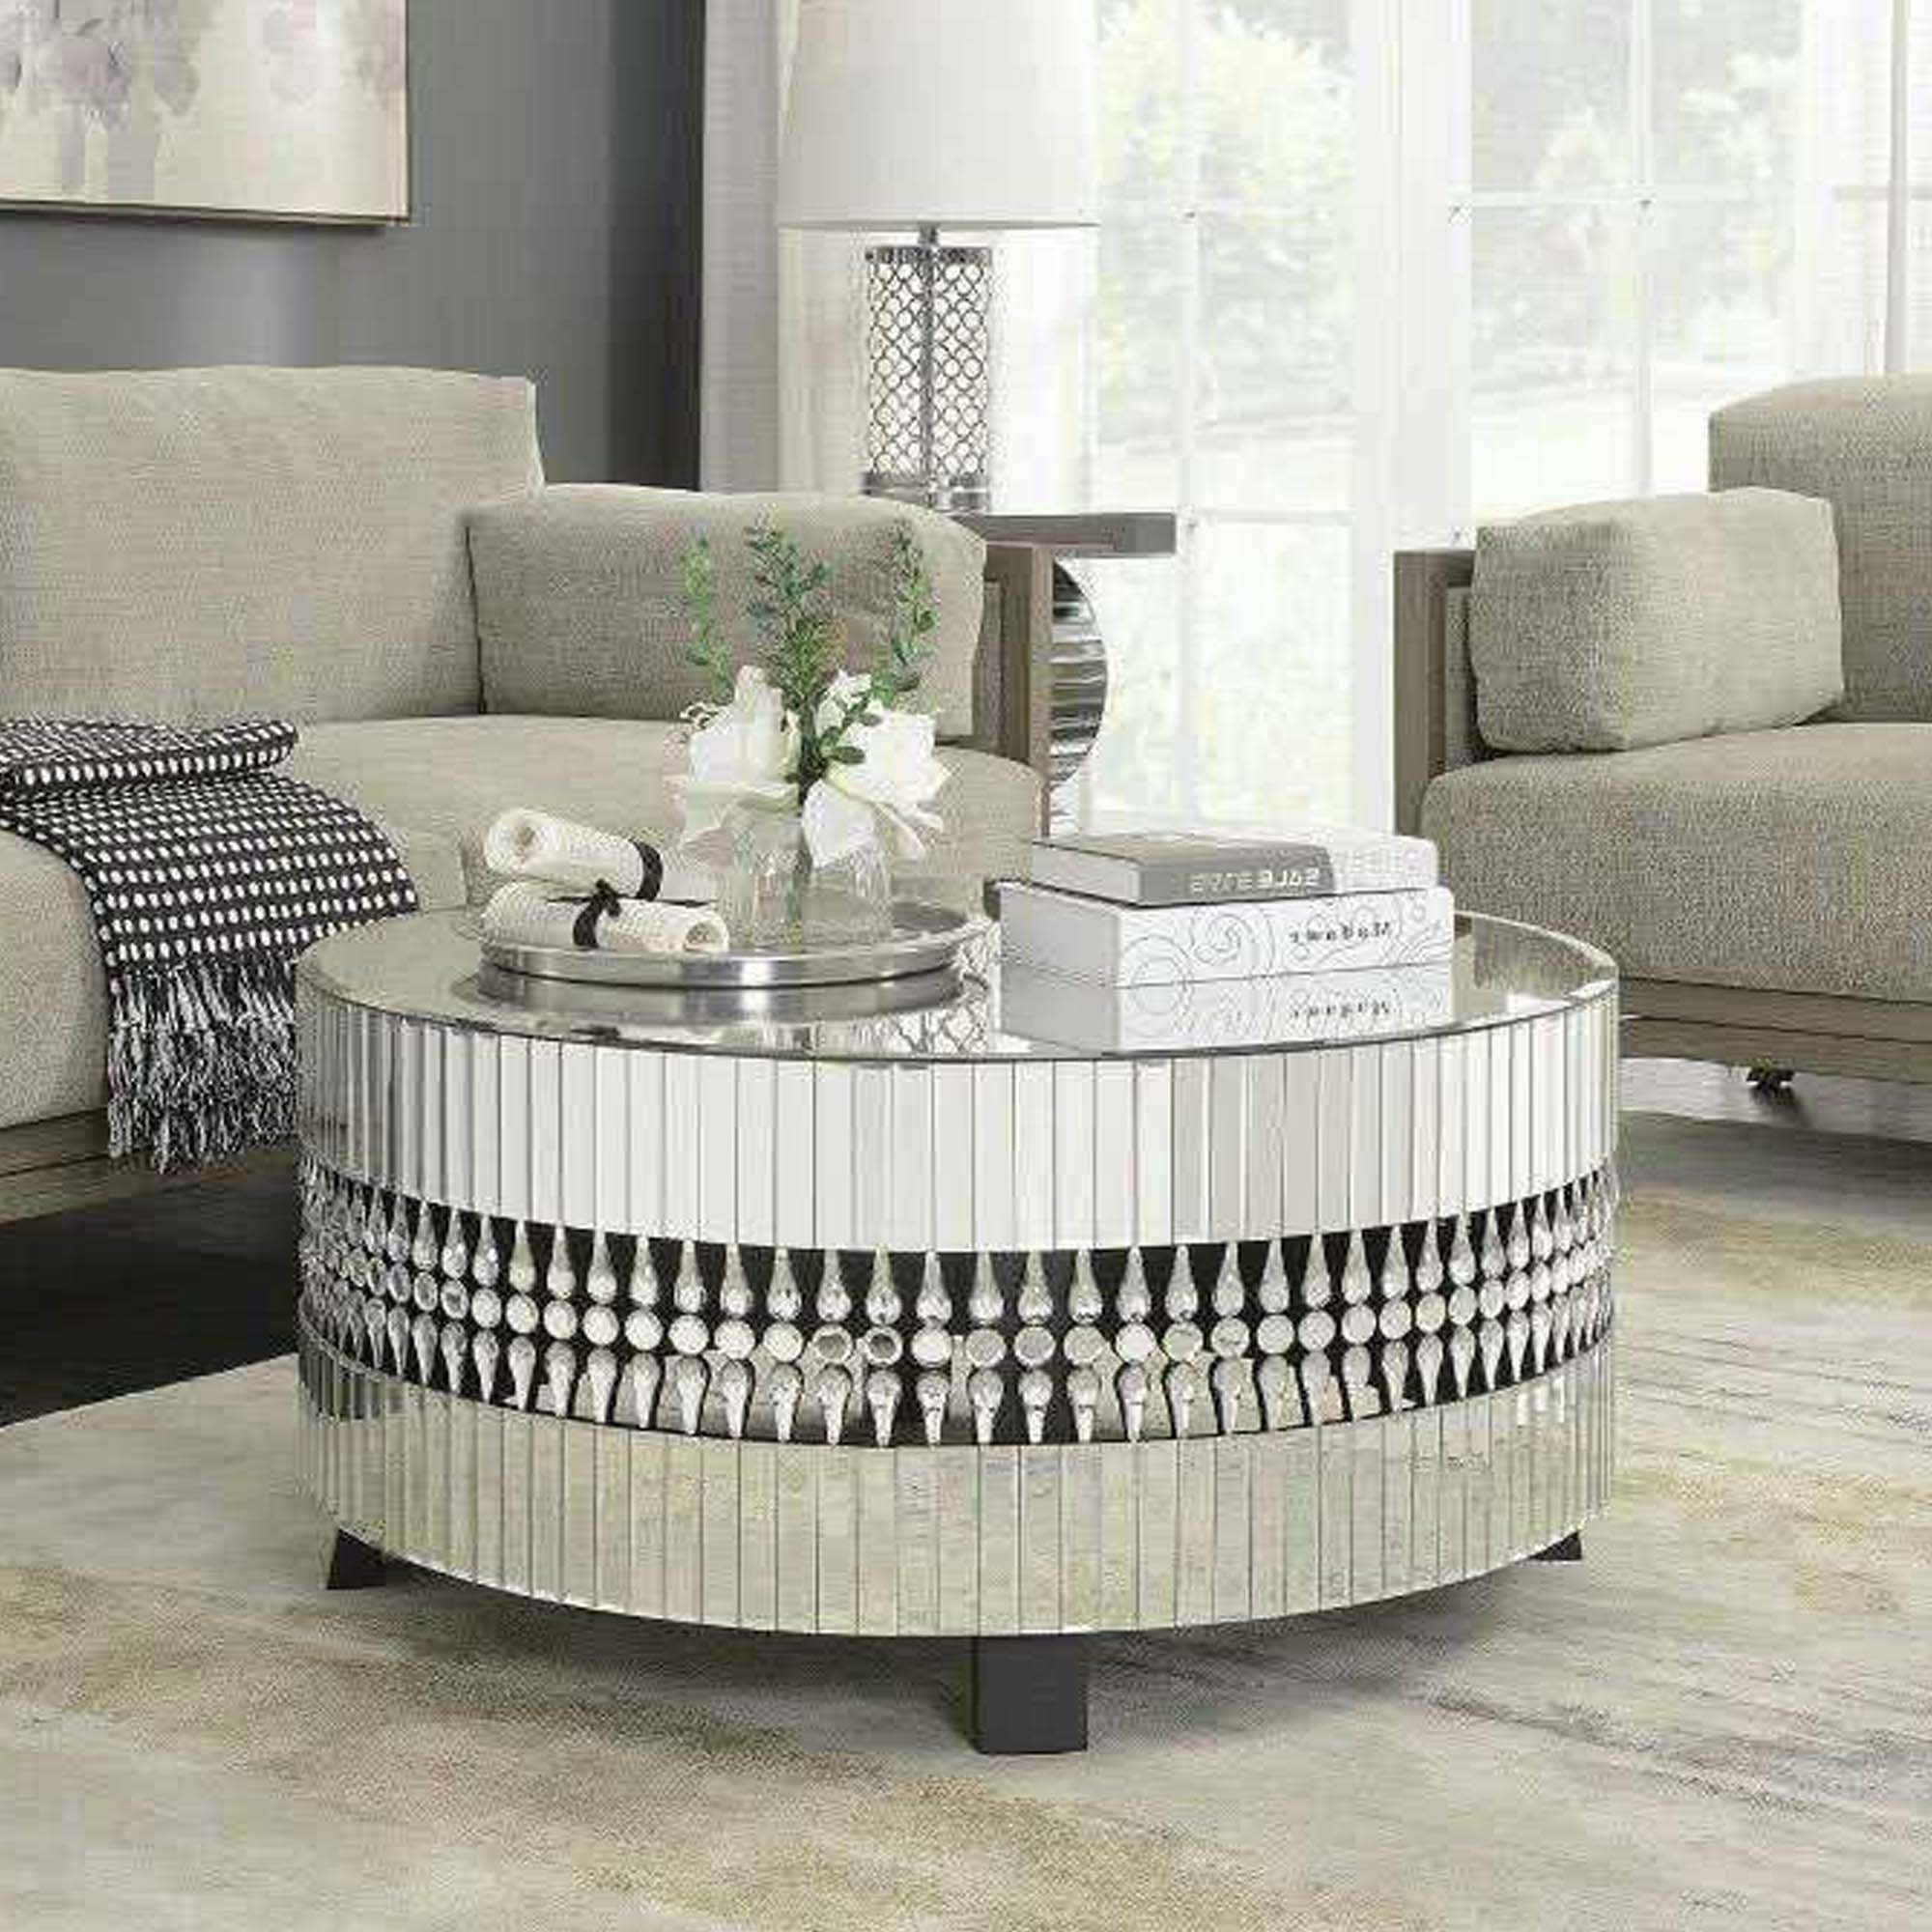 Most Recently Released Small Mirrored Coffee Tables Pertaining To Coffee Tables : Crystal Mirrored Coffee Table White Marble Sale (View 12 of 20)